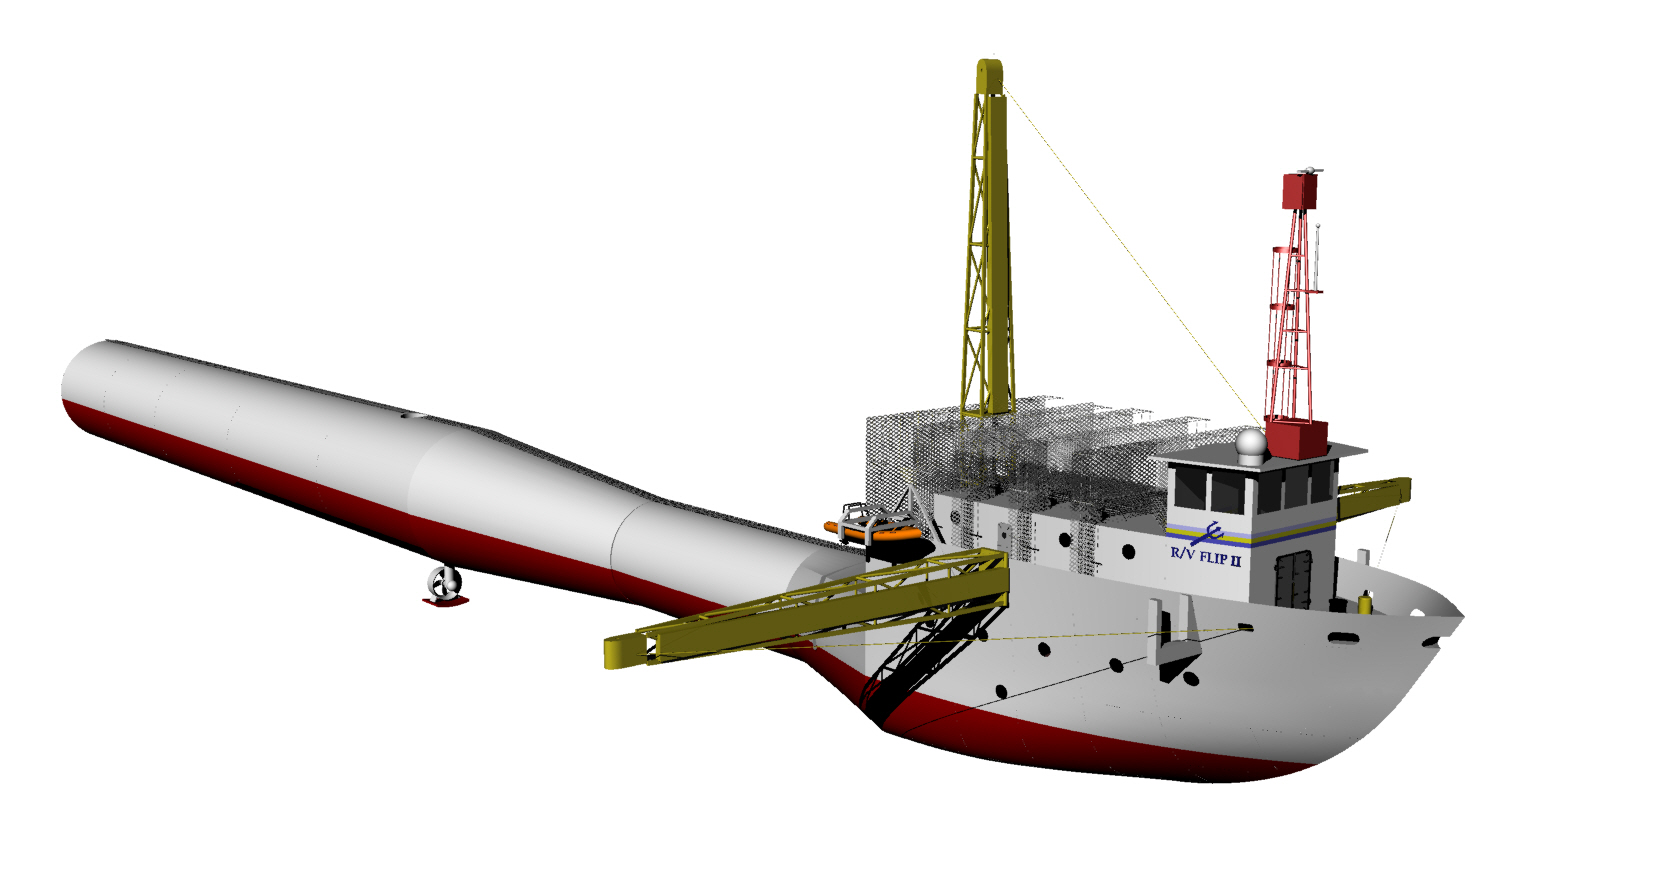 2014 winning ship design R/V FLIP II